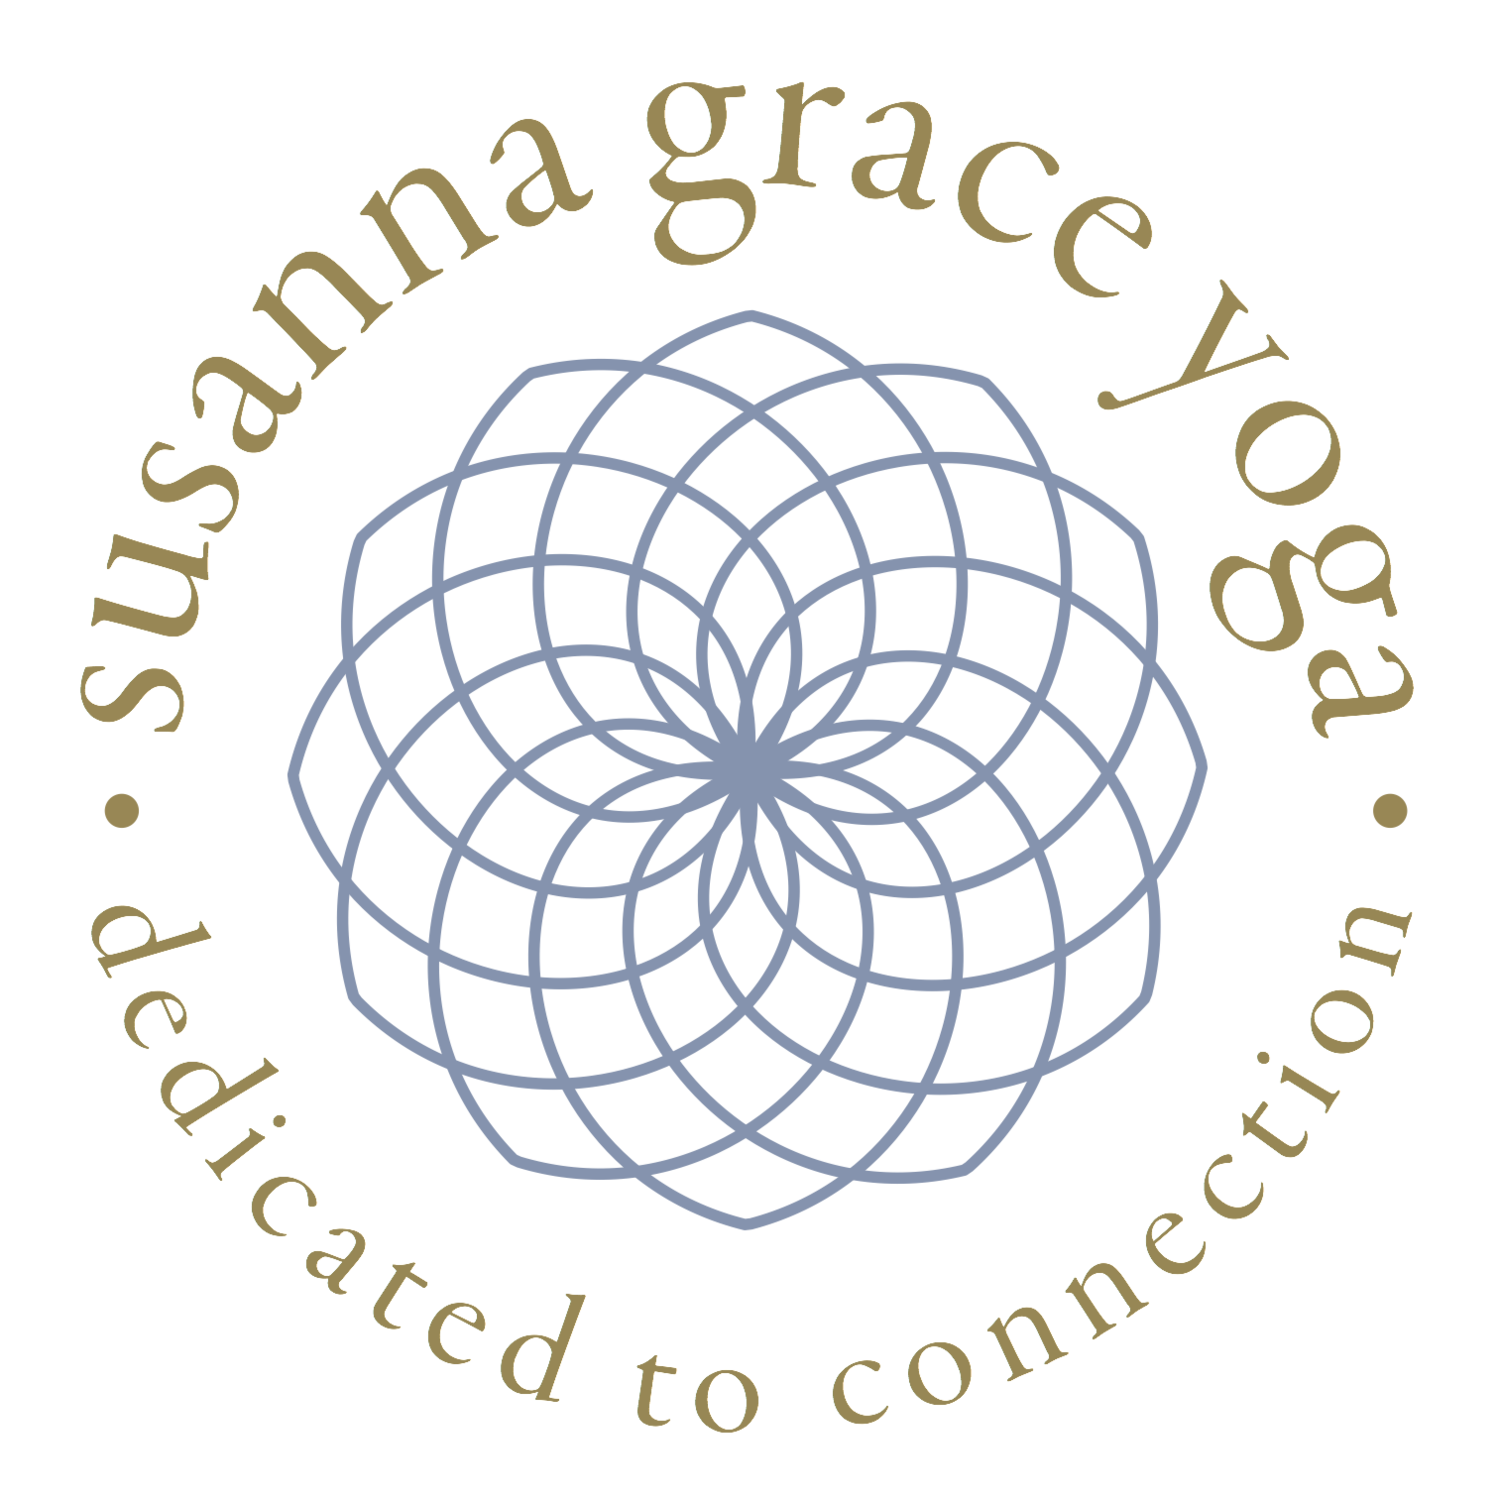 Susanna Grace Yoga - Yoga Classes, One-to-Ones & Retreats in Sheffield